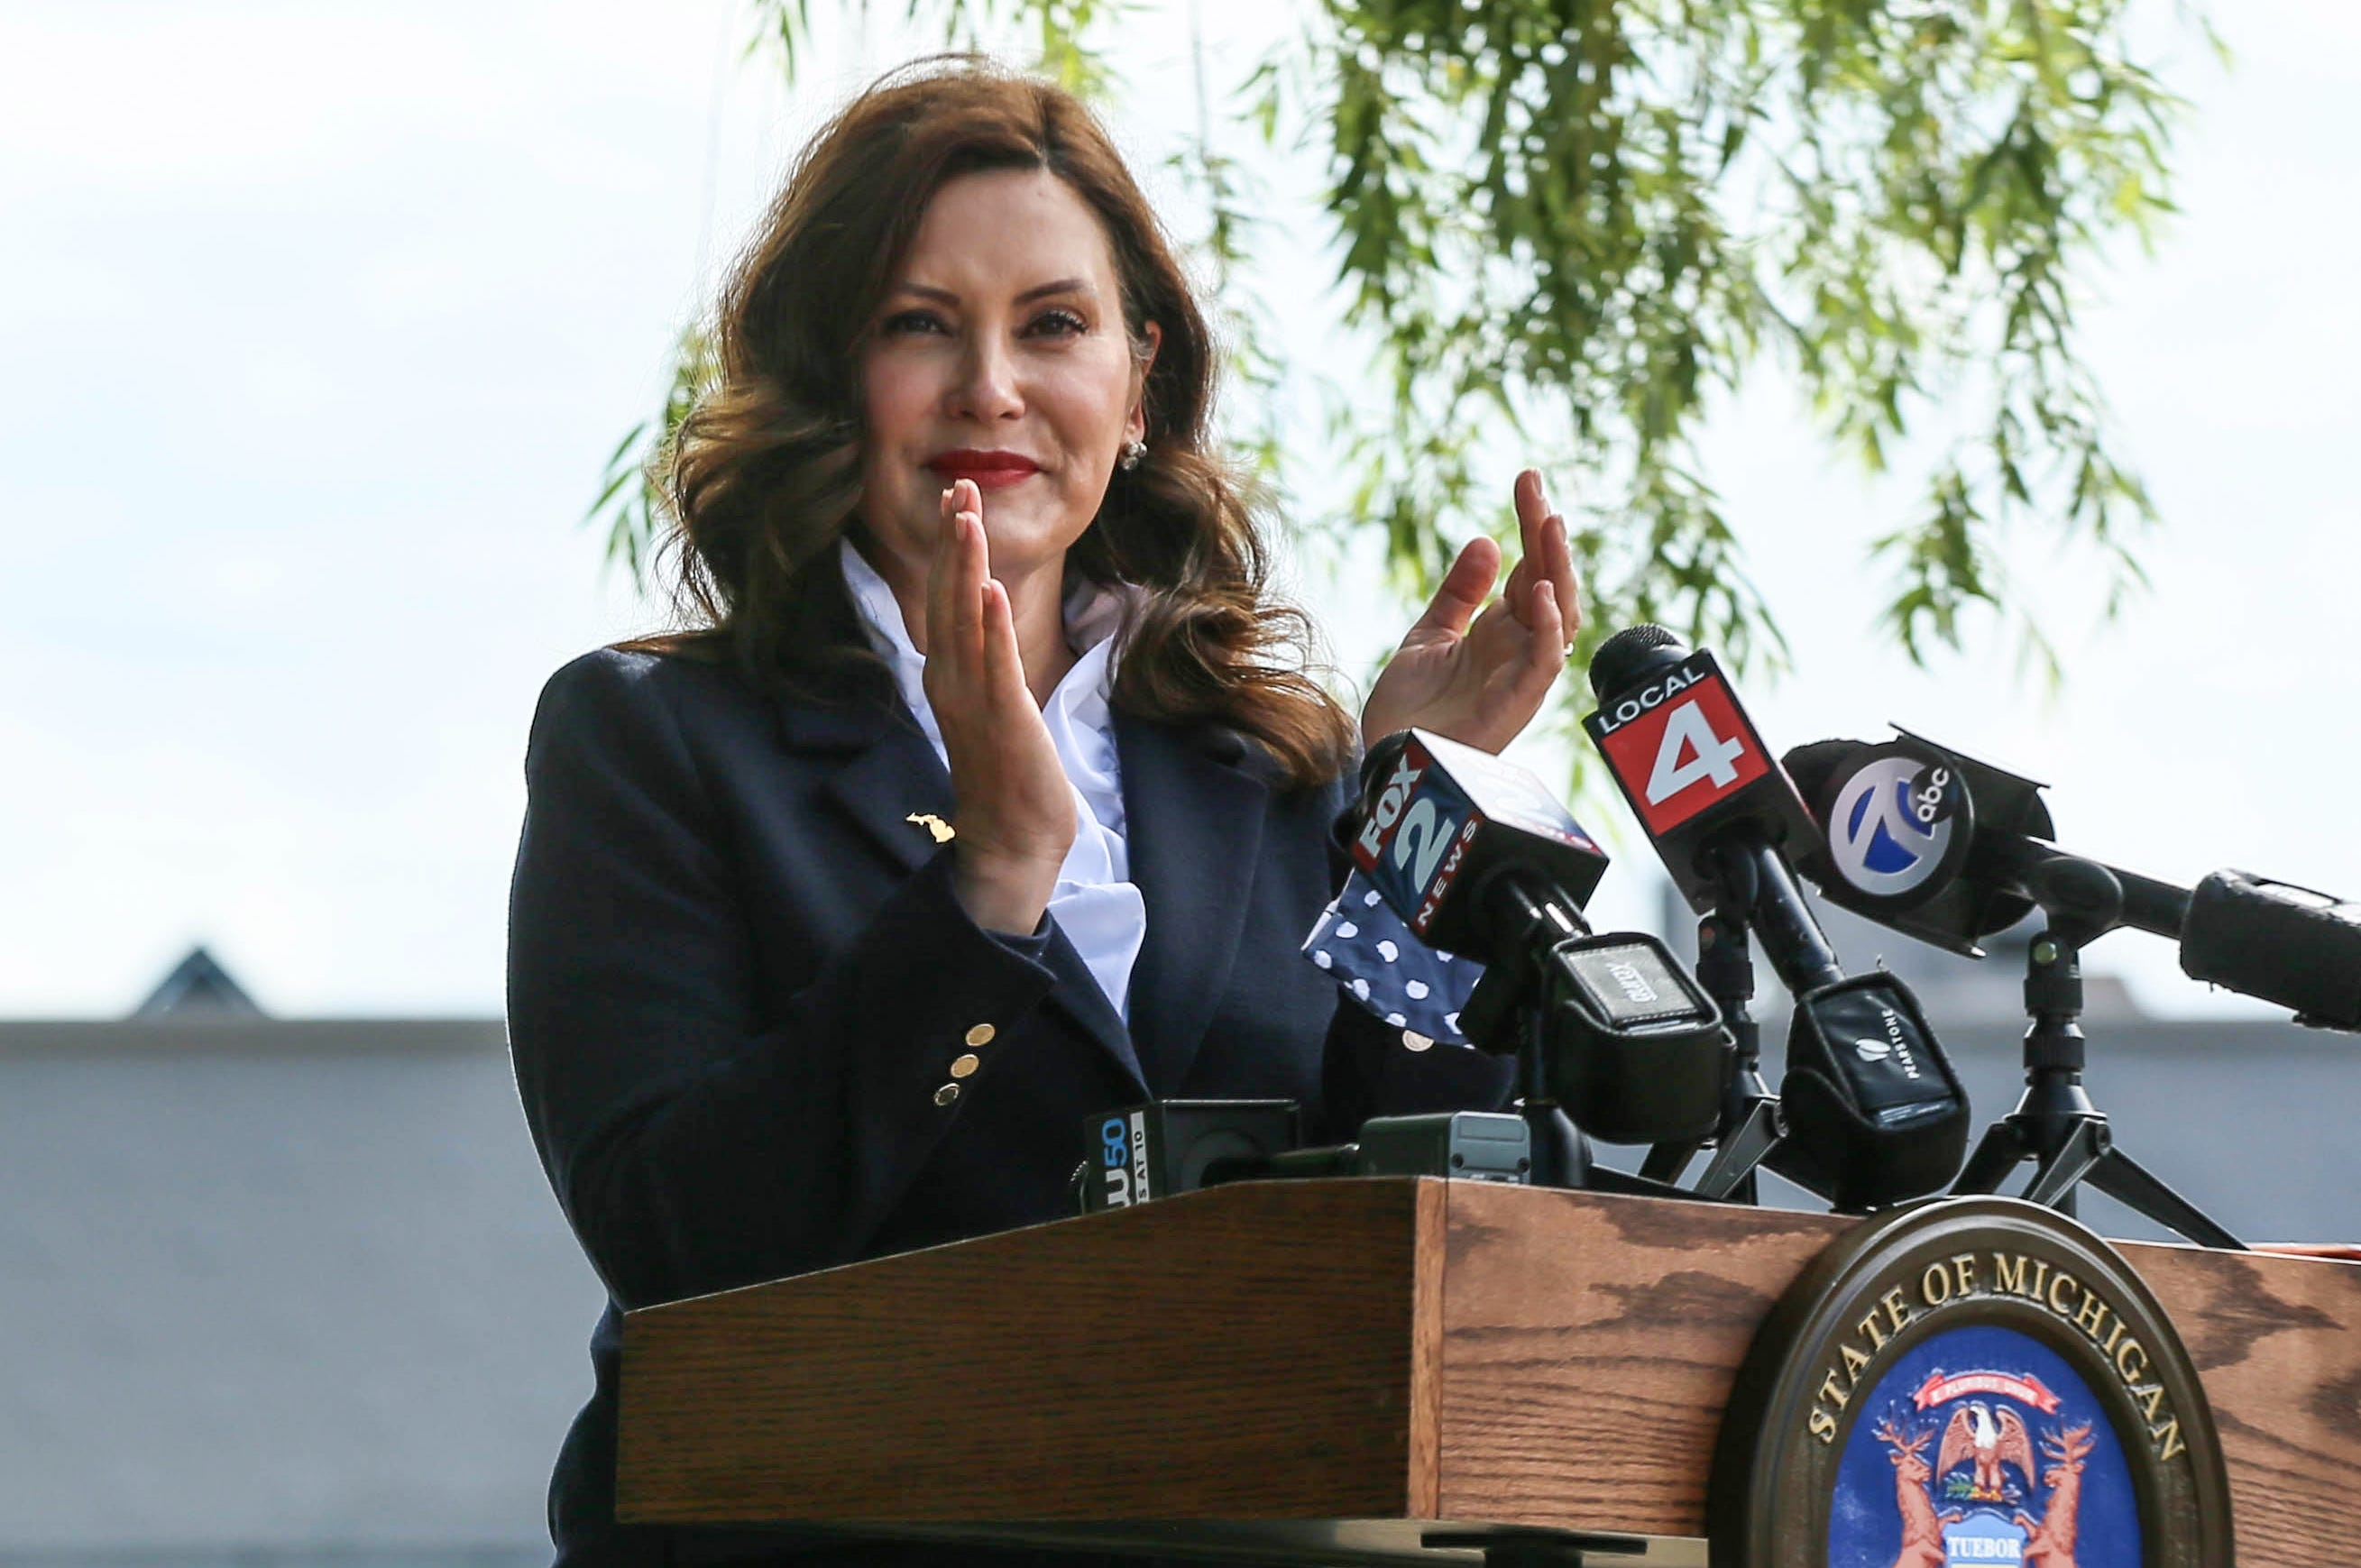 Whitmer reinstates 'prevailing wage' in move that draws GOP opposition: What it means